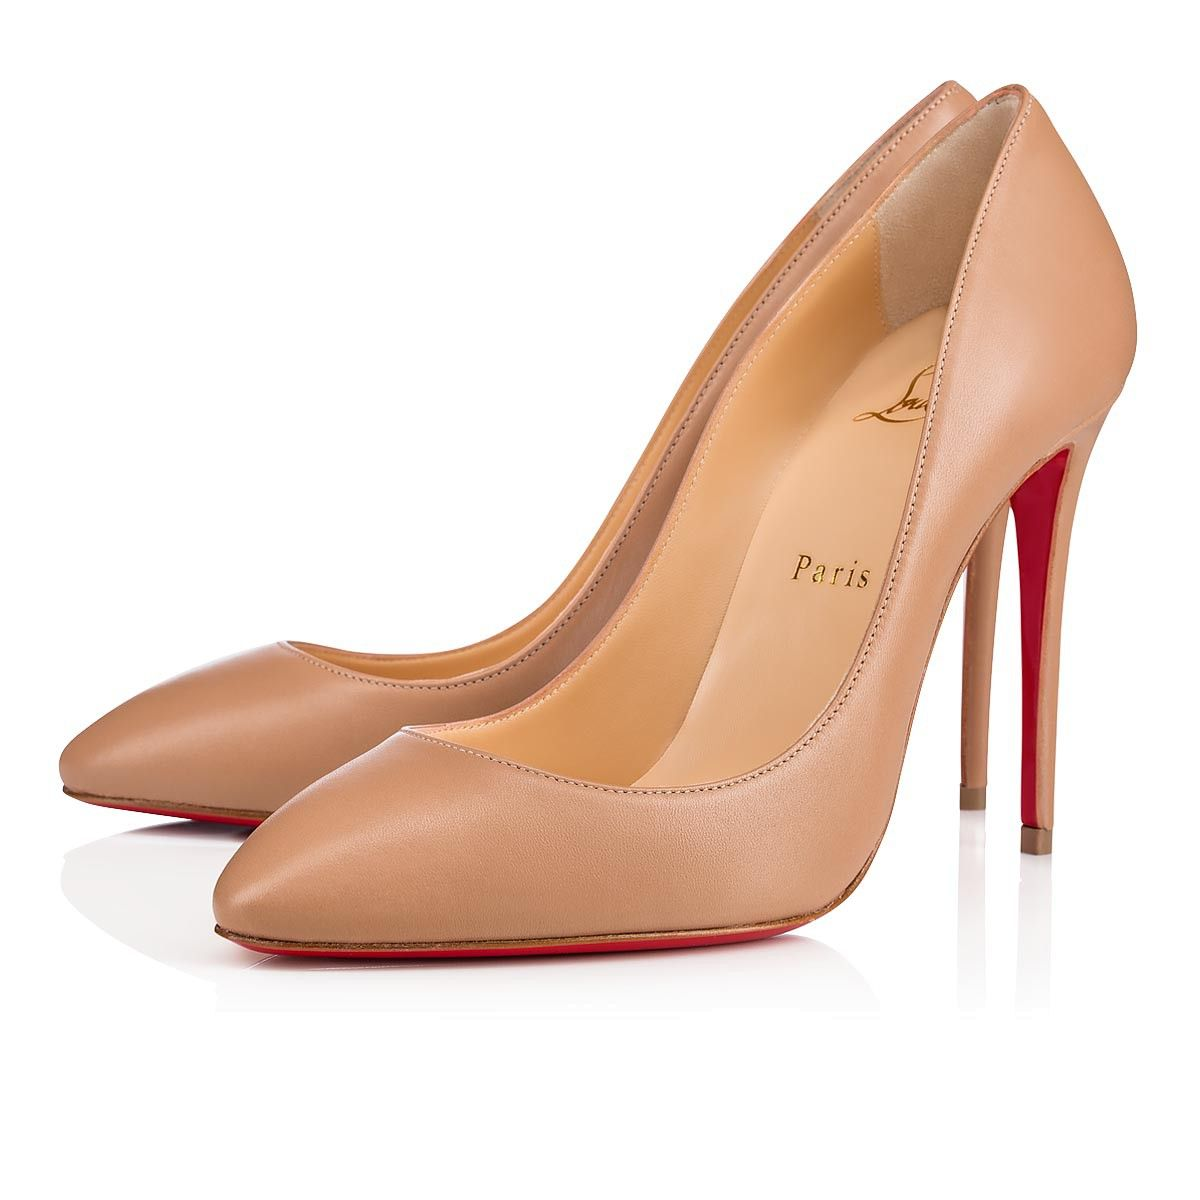 304133945a2 Christian Louboutin Eloise in 2019 | Style | Stiletto Heels, Shoes ...